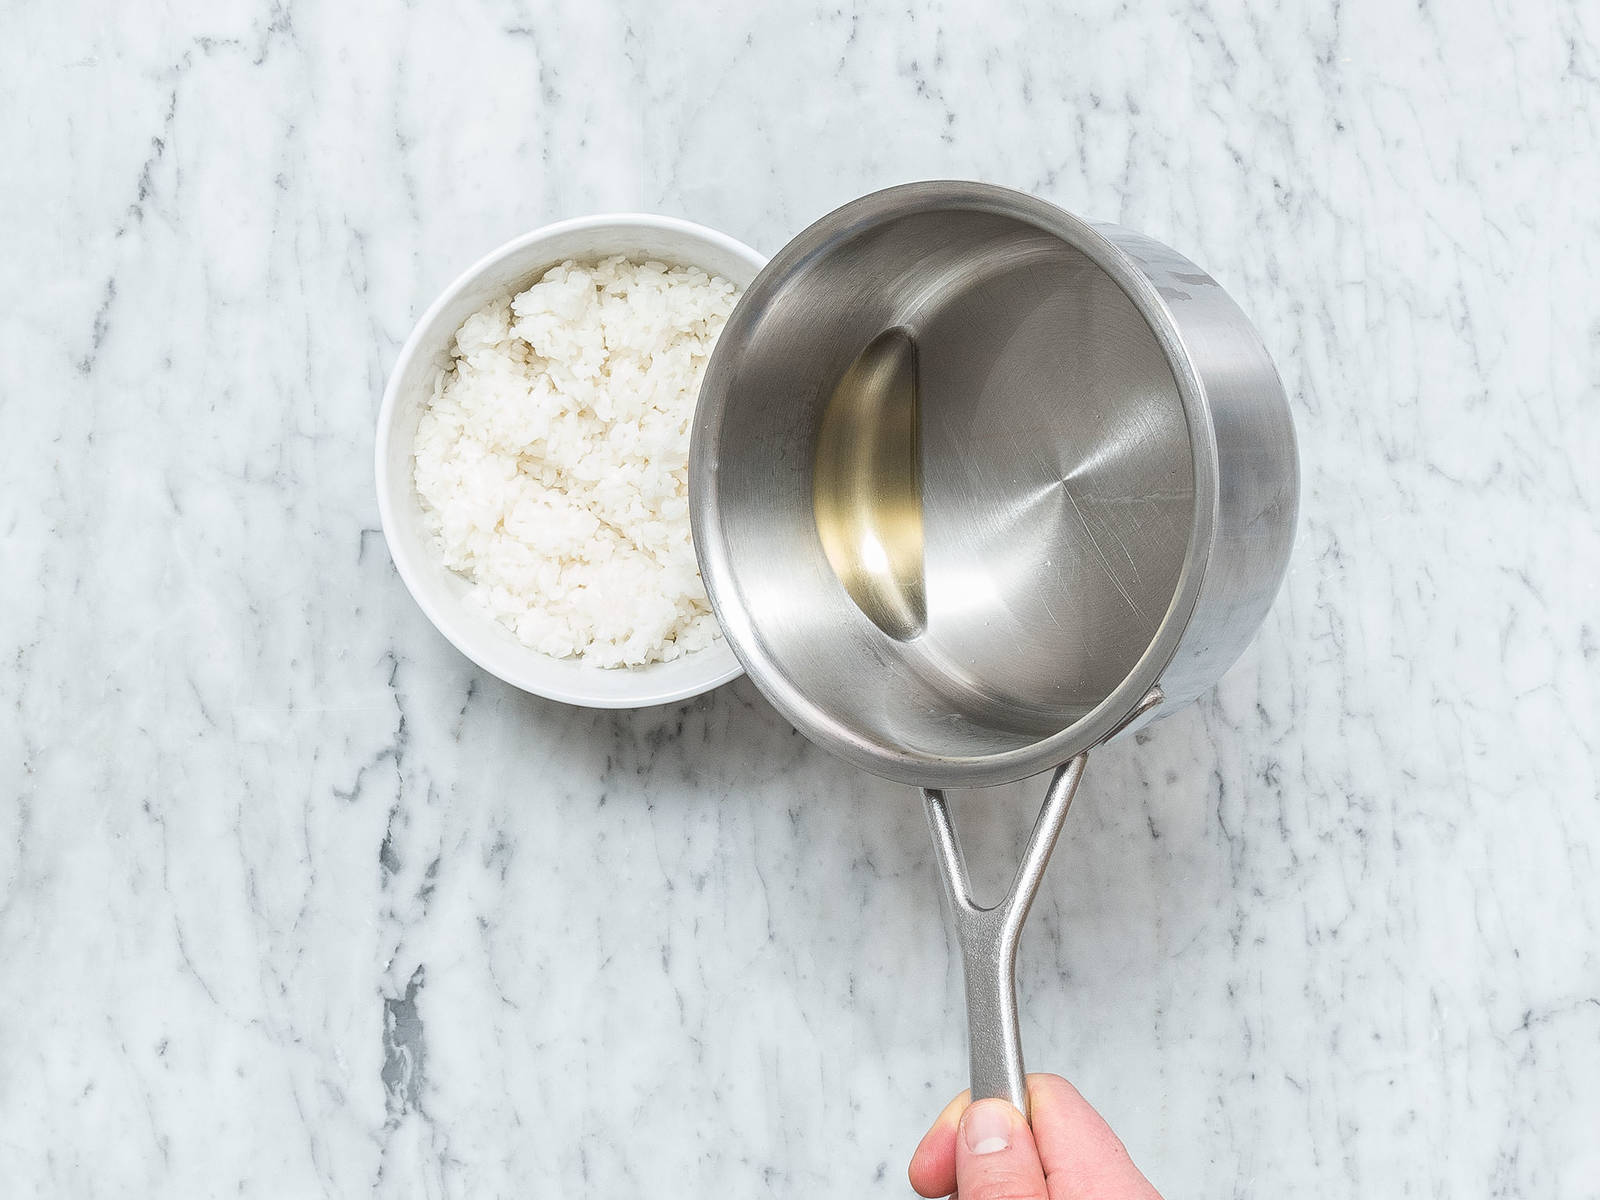 In a small saucepan, heat the sugar, salt, rice vinegar, and mirin until sugar and salt are completely dissolved. In a bowl, sprinkle the warm, cooked sushi rice with the vinegar mixture and stir gently with a rubber spatula. Cover with a damp kitchen towel while preparing the sushi, letting it come to room temperature.